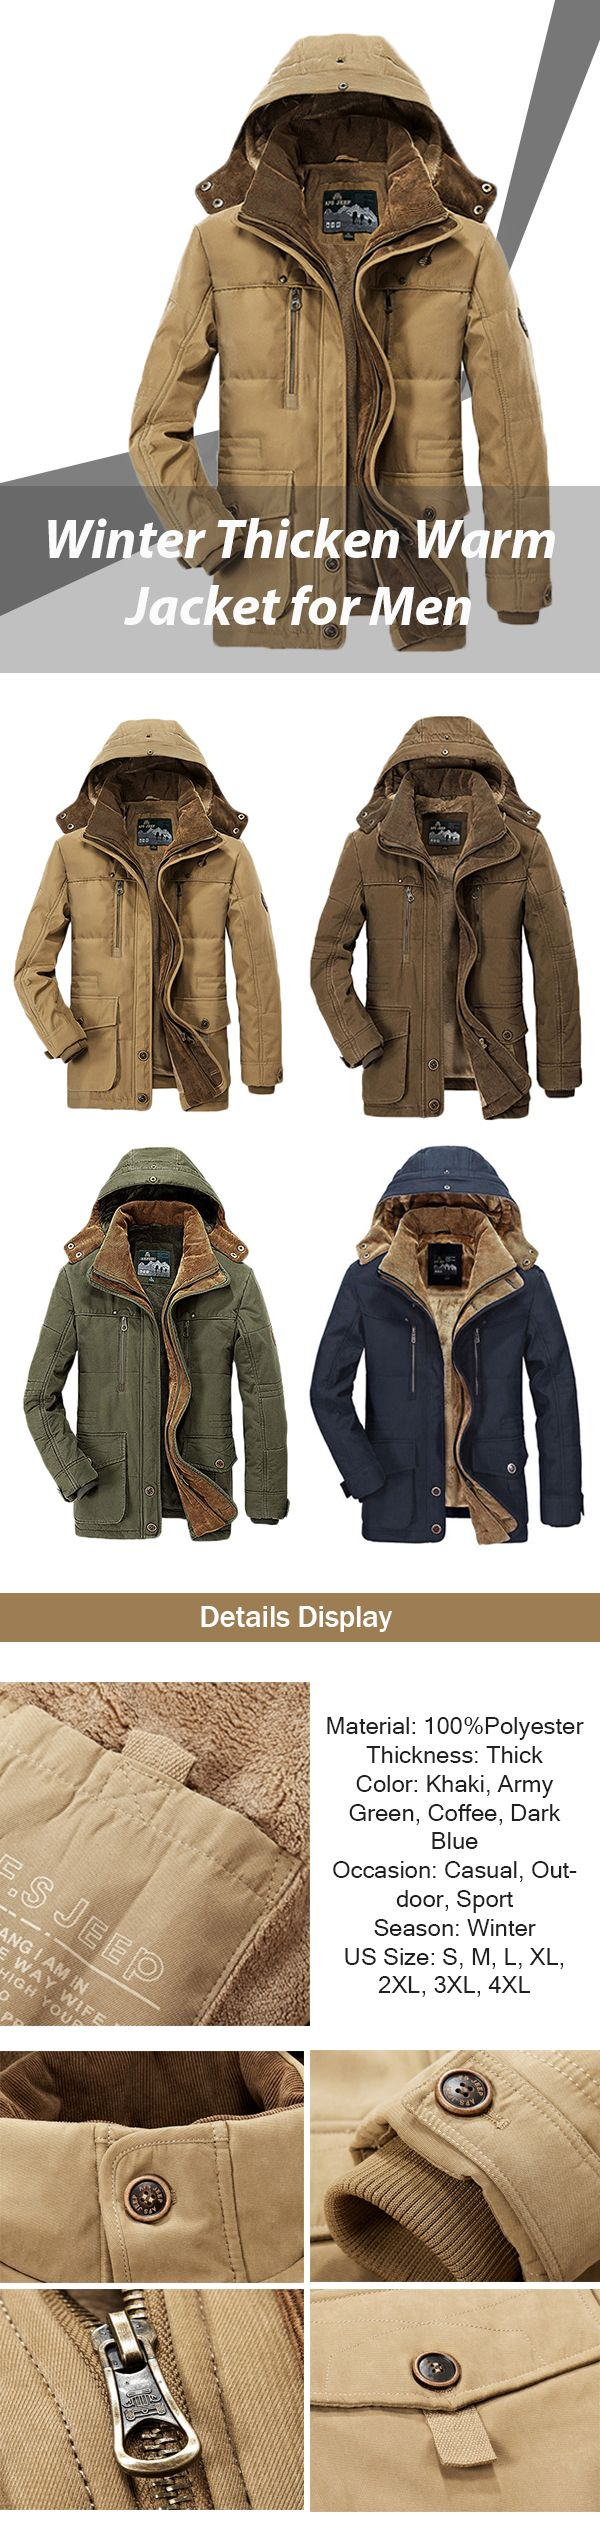 US$81.88 Winter Thicken Warm Multi Pockets Solid Color Detachable Hood Jacket for Men